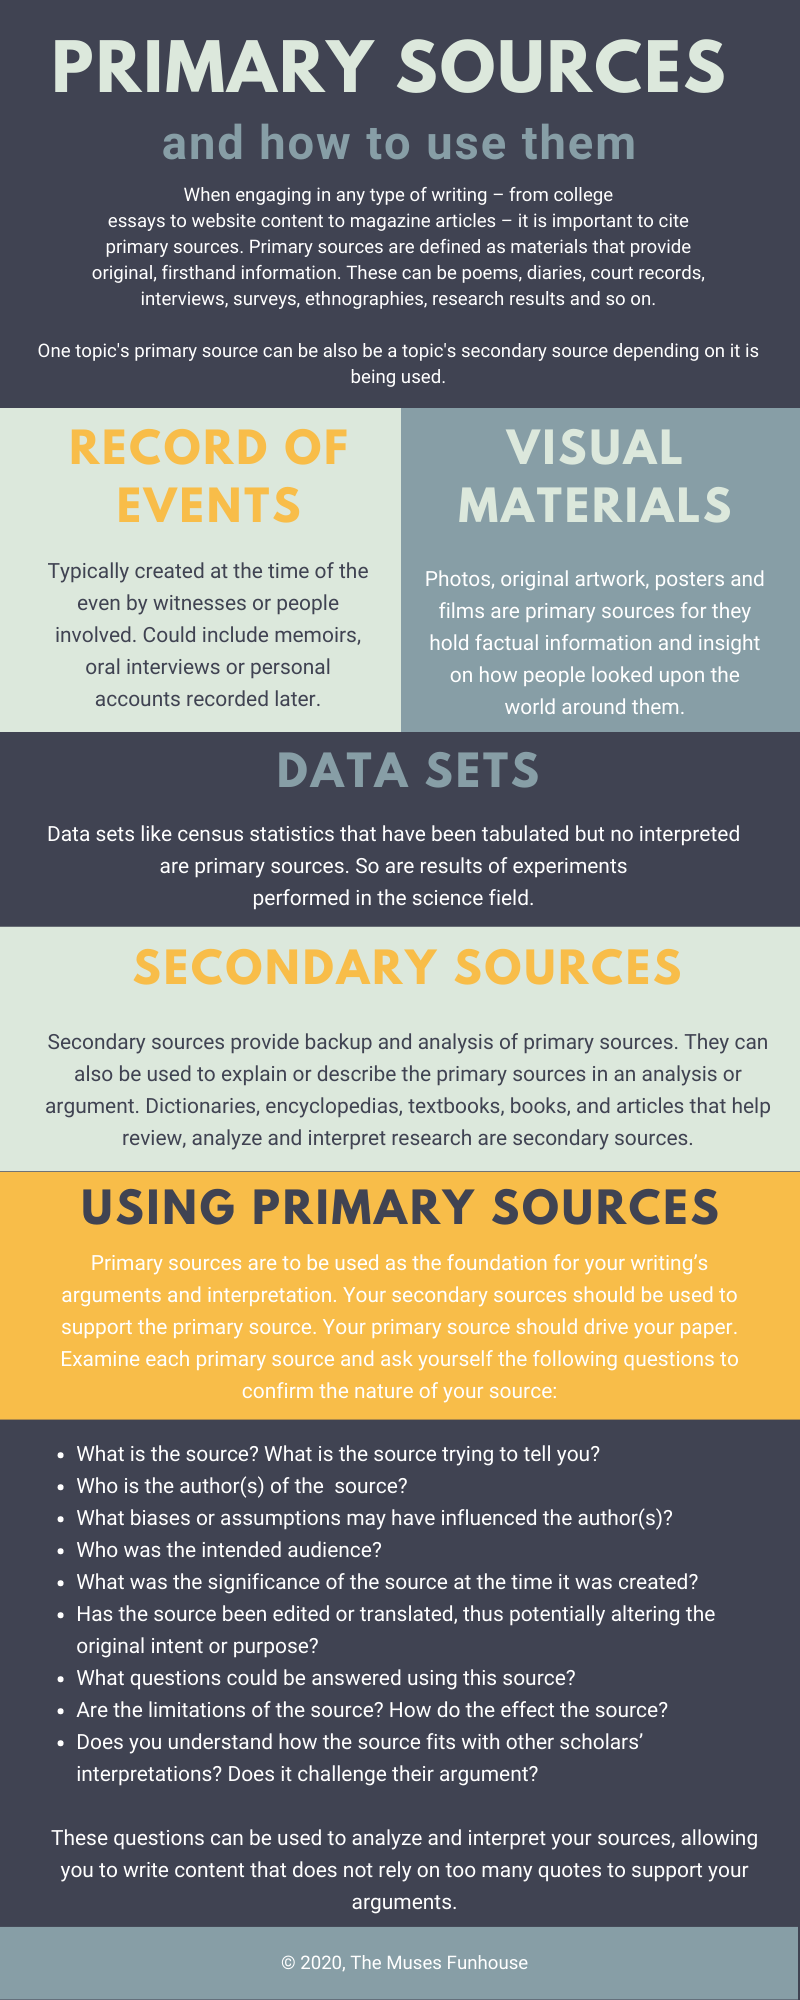 An infographic on primary sources and how to use them